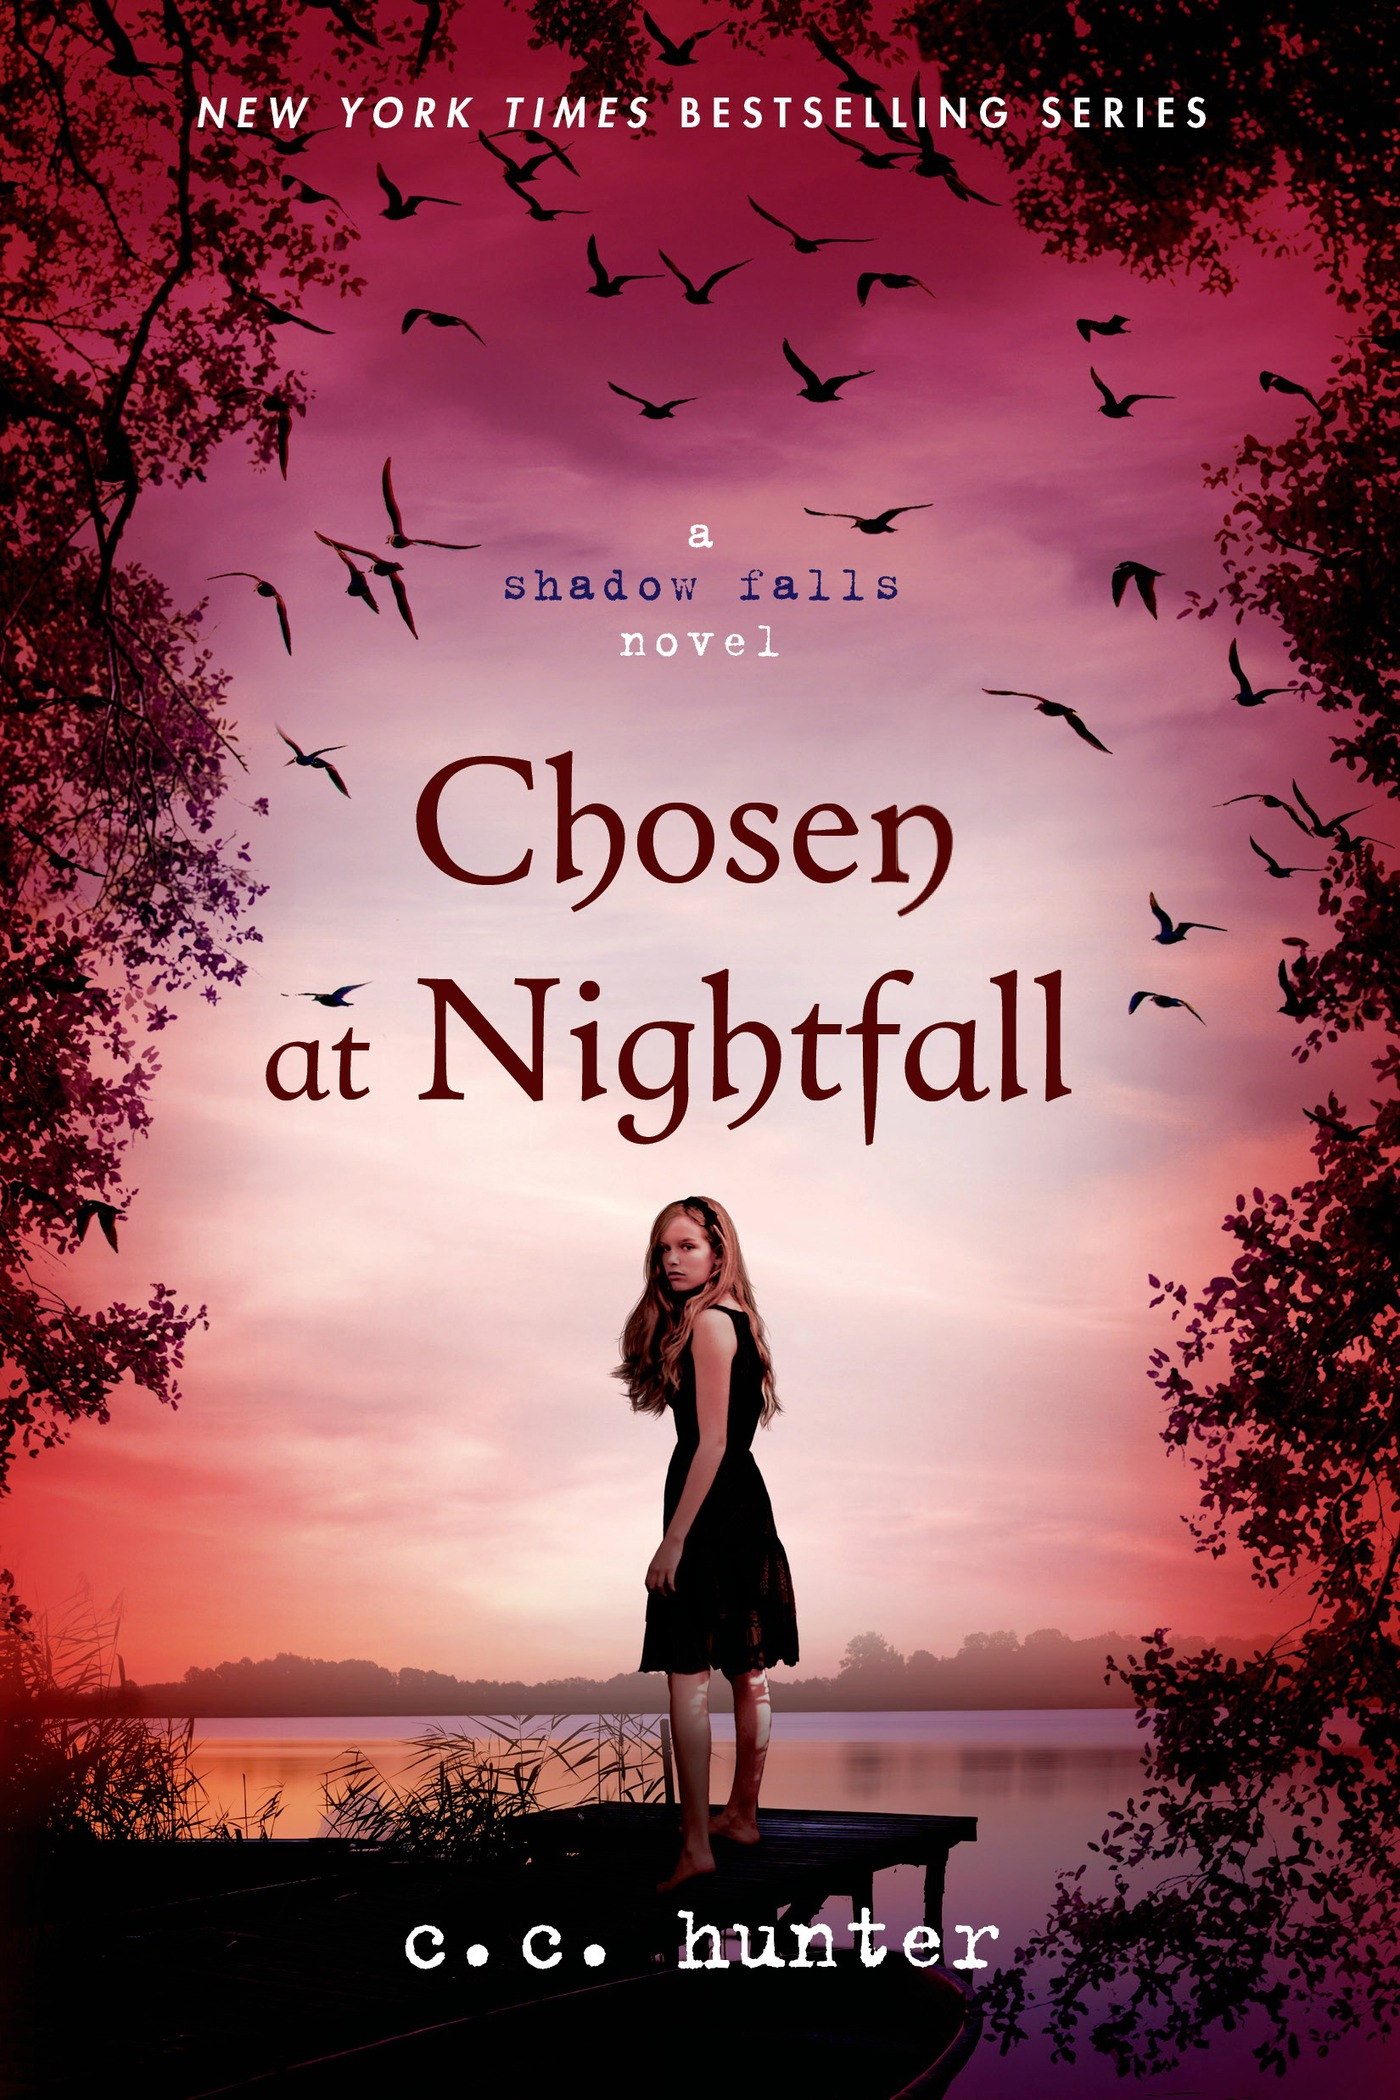 Chosen at Nightfall